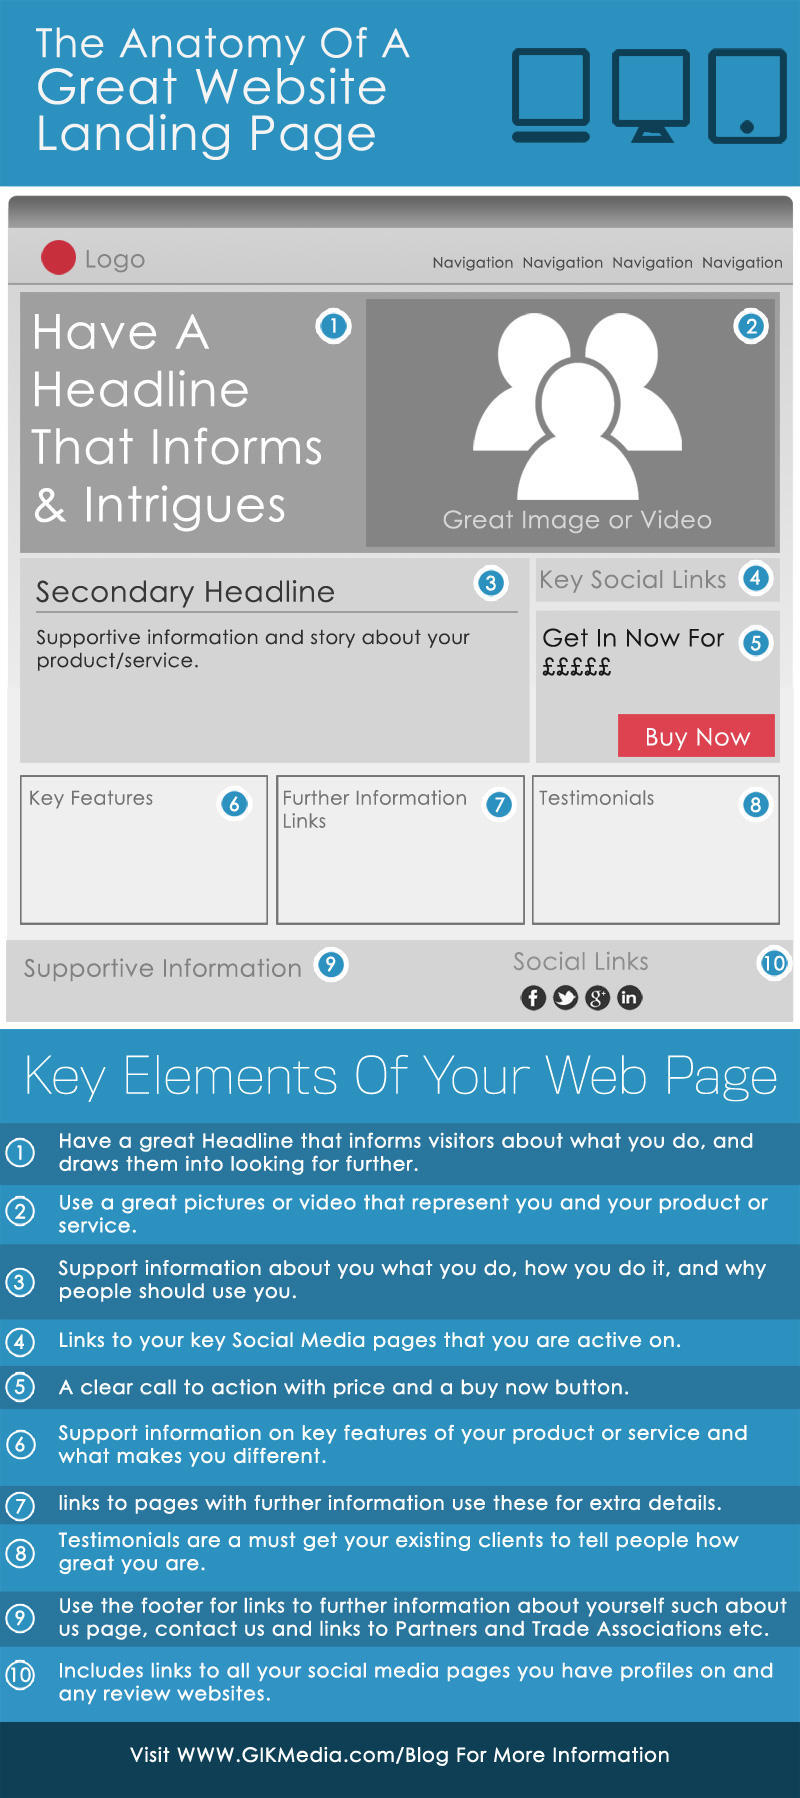 The Anatomy Of A Great Website Landing Page InfoGraphic